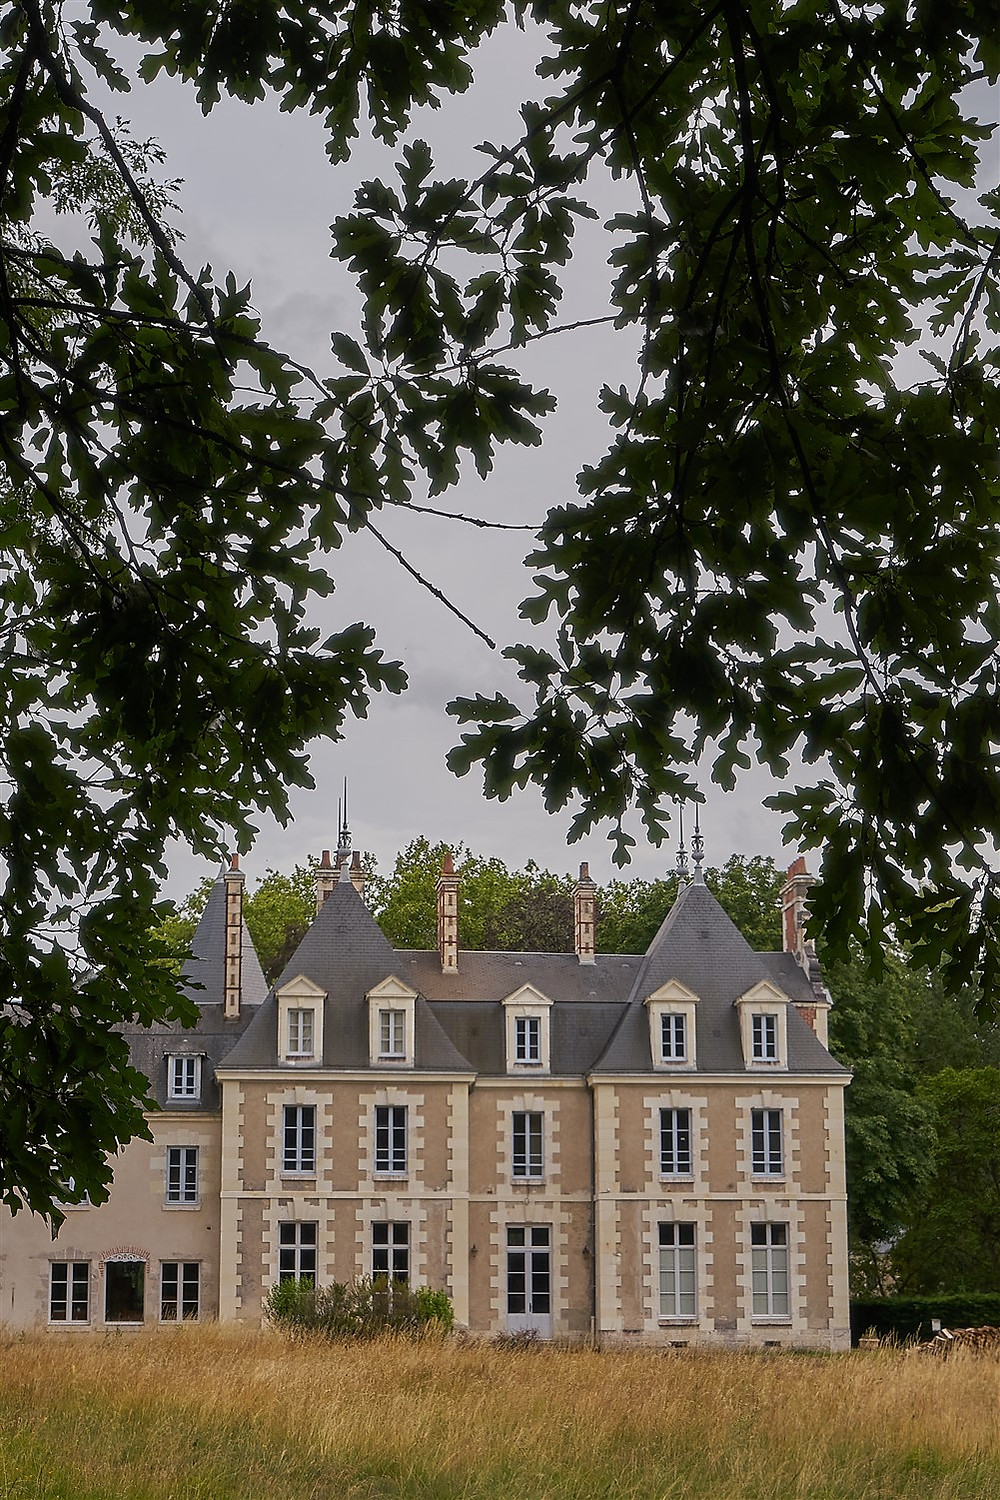 New hotel opening - Les Sources de Cheverny, Loire Valley, France